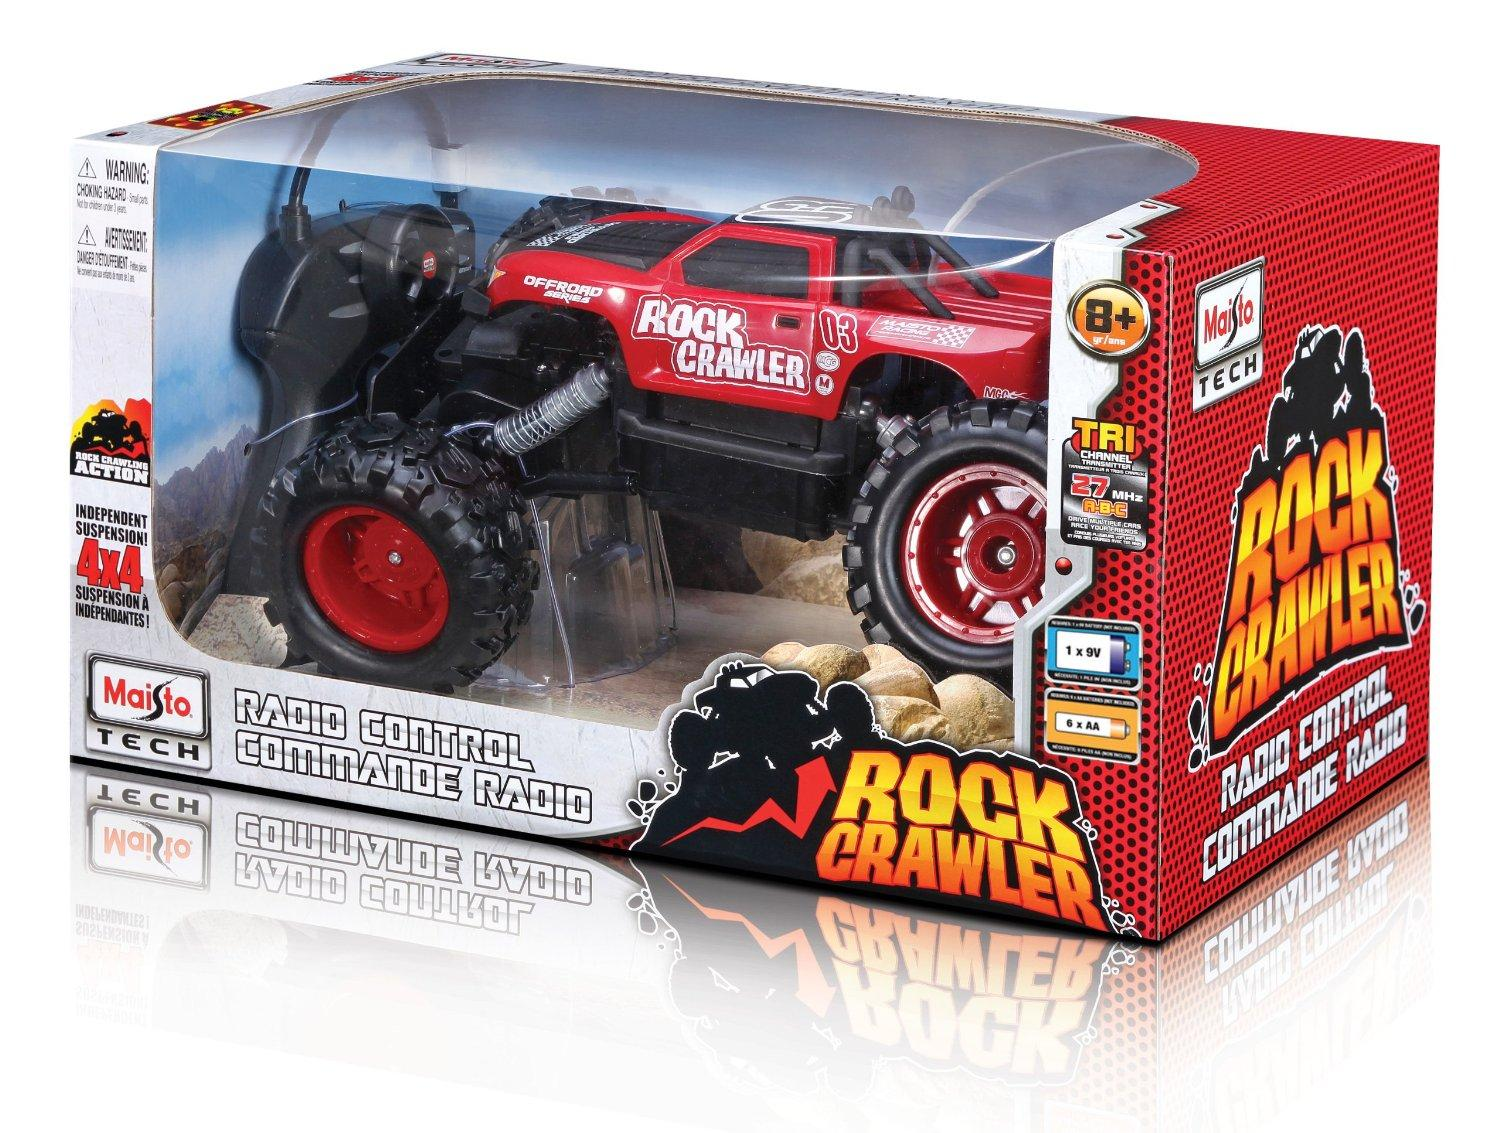 Amazon.com: Maisto R/C Rock Crawler Radio Control Vehicle (Colors May